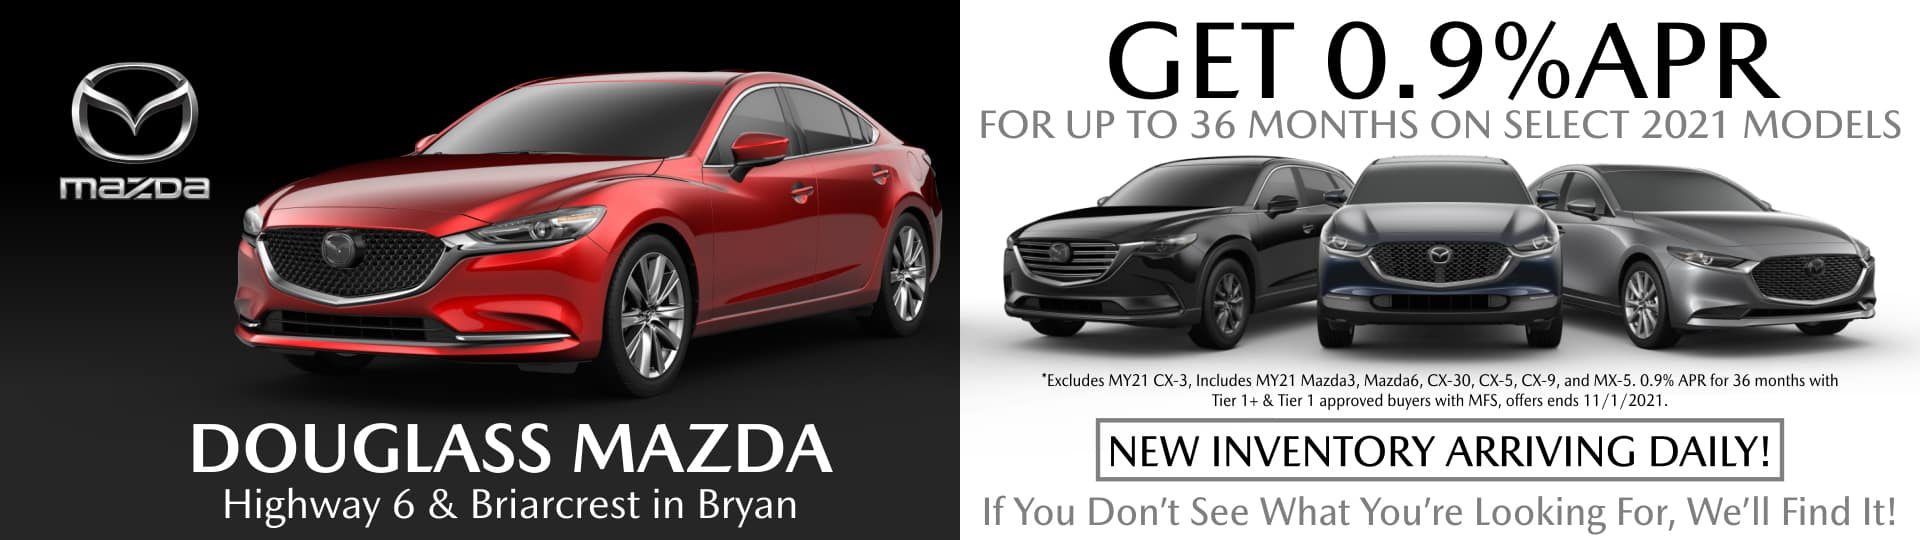 Mazda Special APR On Select Models